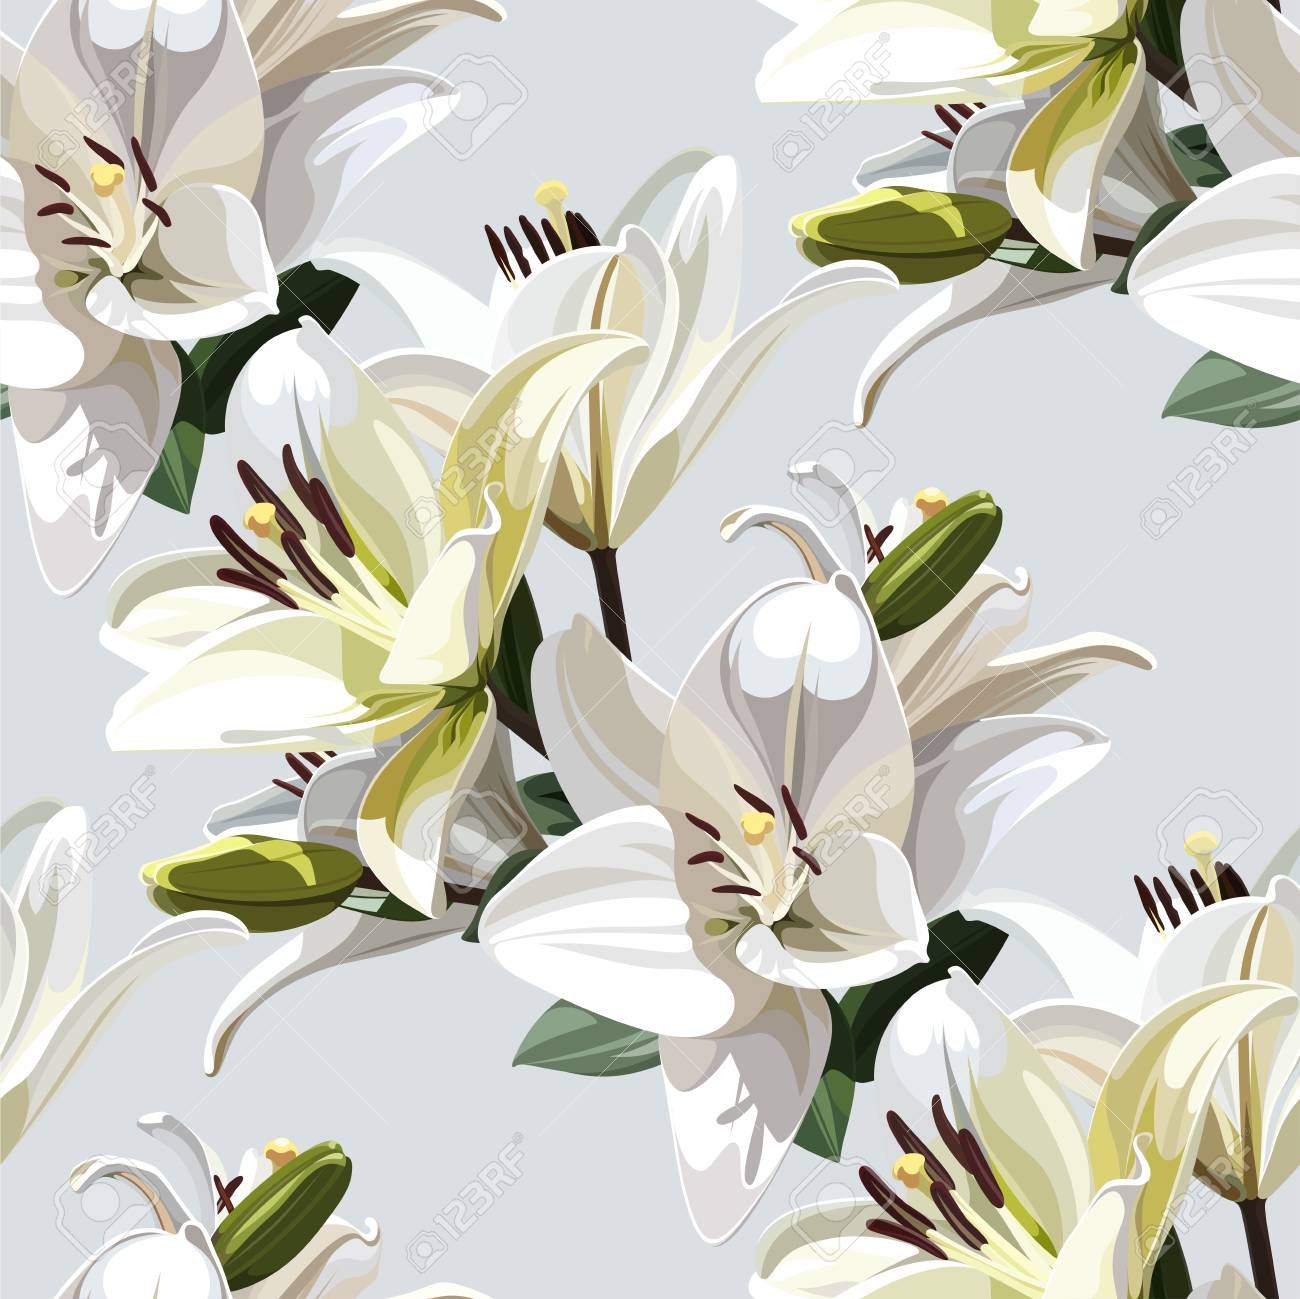 White flowers of lily madonna lily seamless floral pattern white flowers of lily madonna lily seamless floral pattern on light background izmirmasajfo